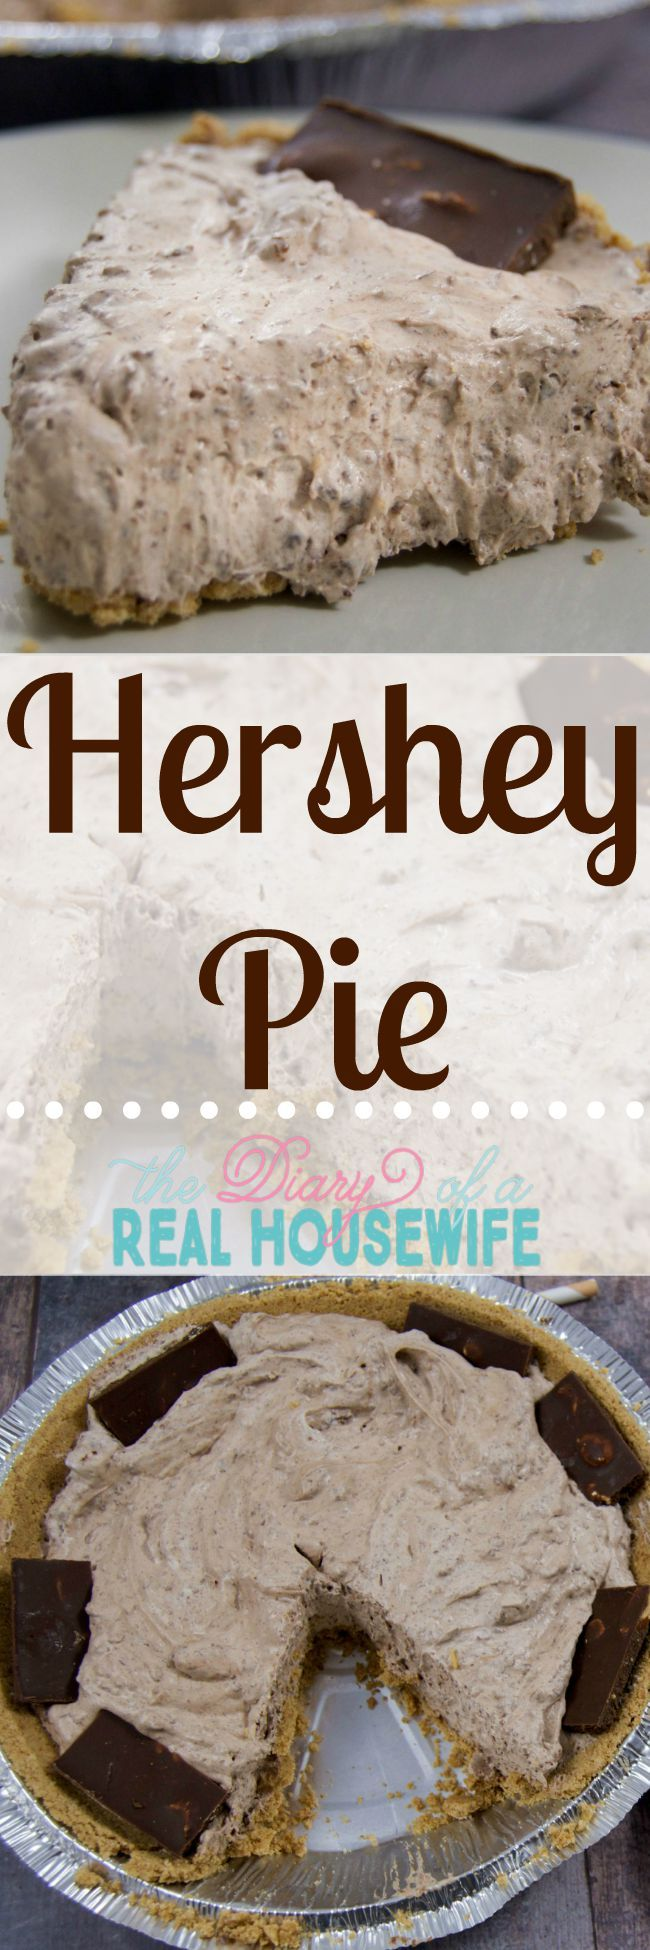 Save this recipe when you need a really quick dessert! It's so good and so easy! Hershey Pie. NO BAKING!